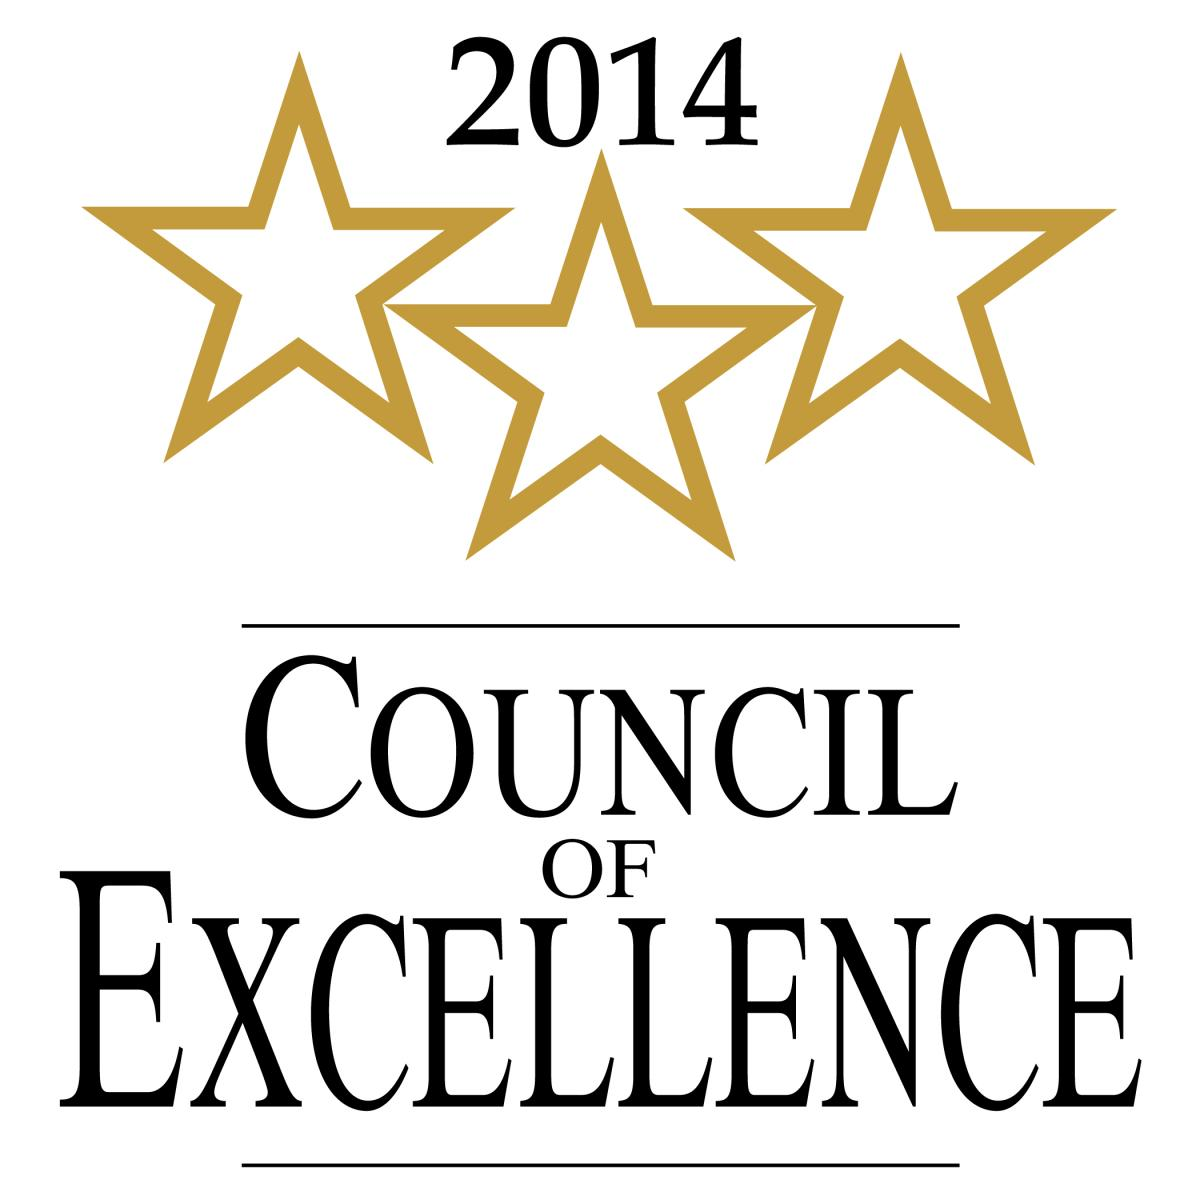 council of excellence